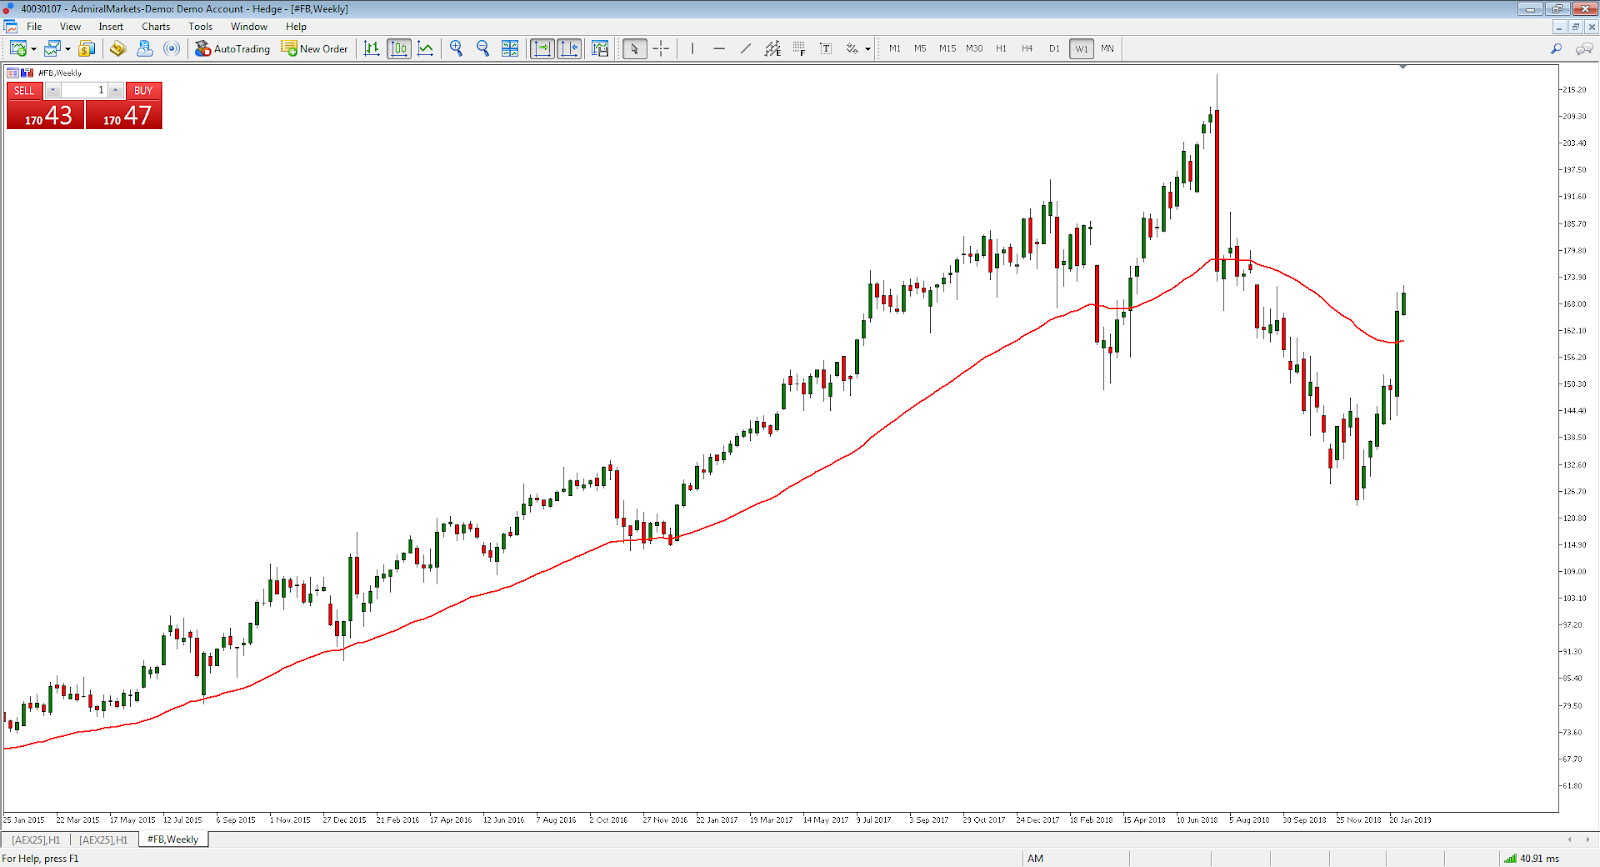 Facebook Aktie Wochenchart Exponential Moving Average